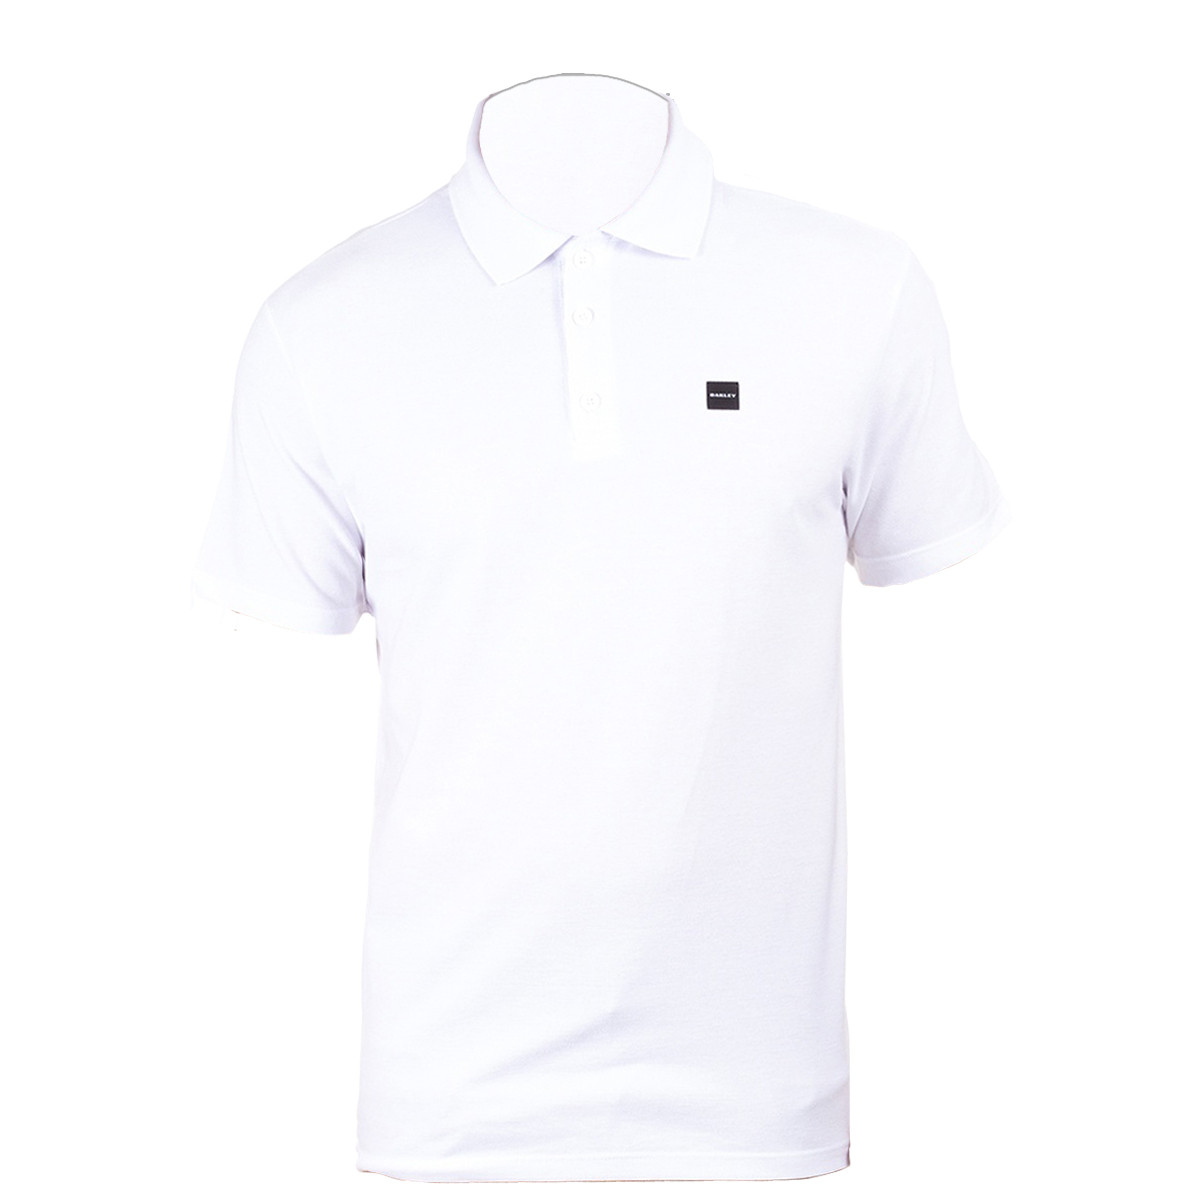 7475850b18 Camisa Oakley Patch 2.0 White ref  434268BR-100